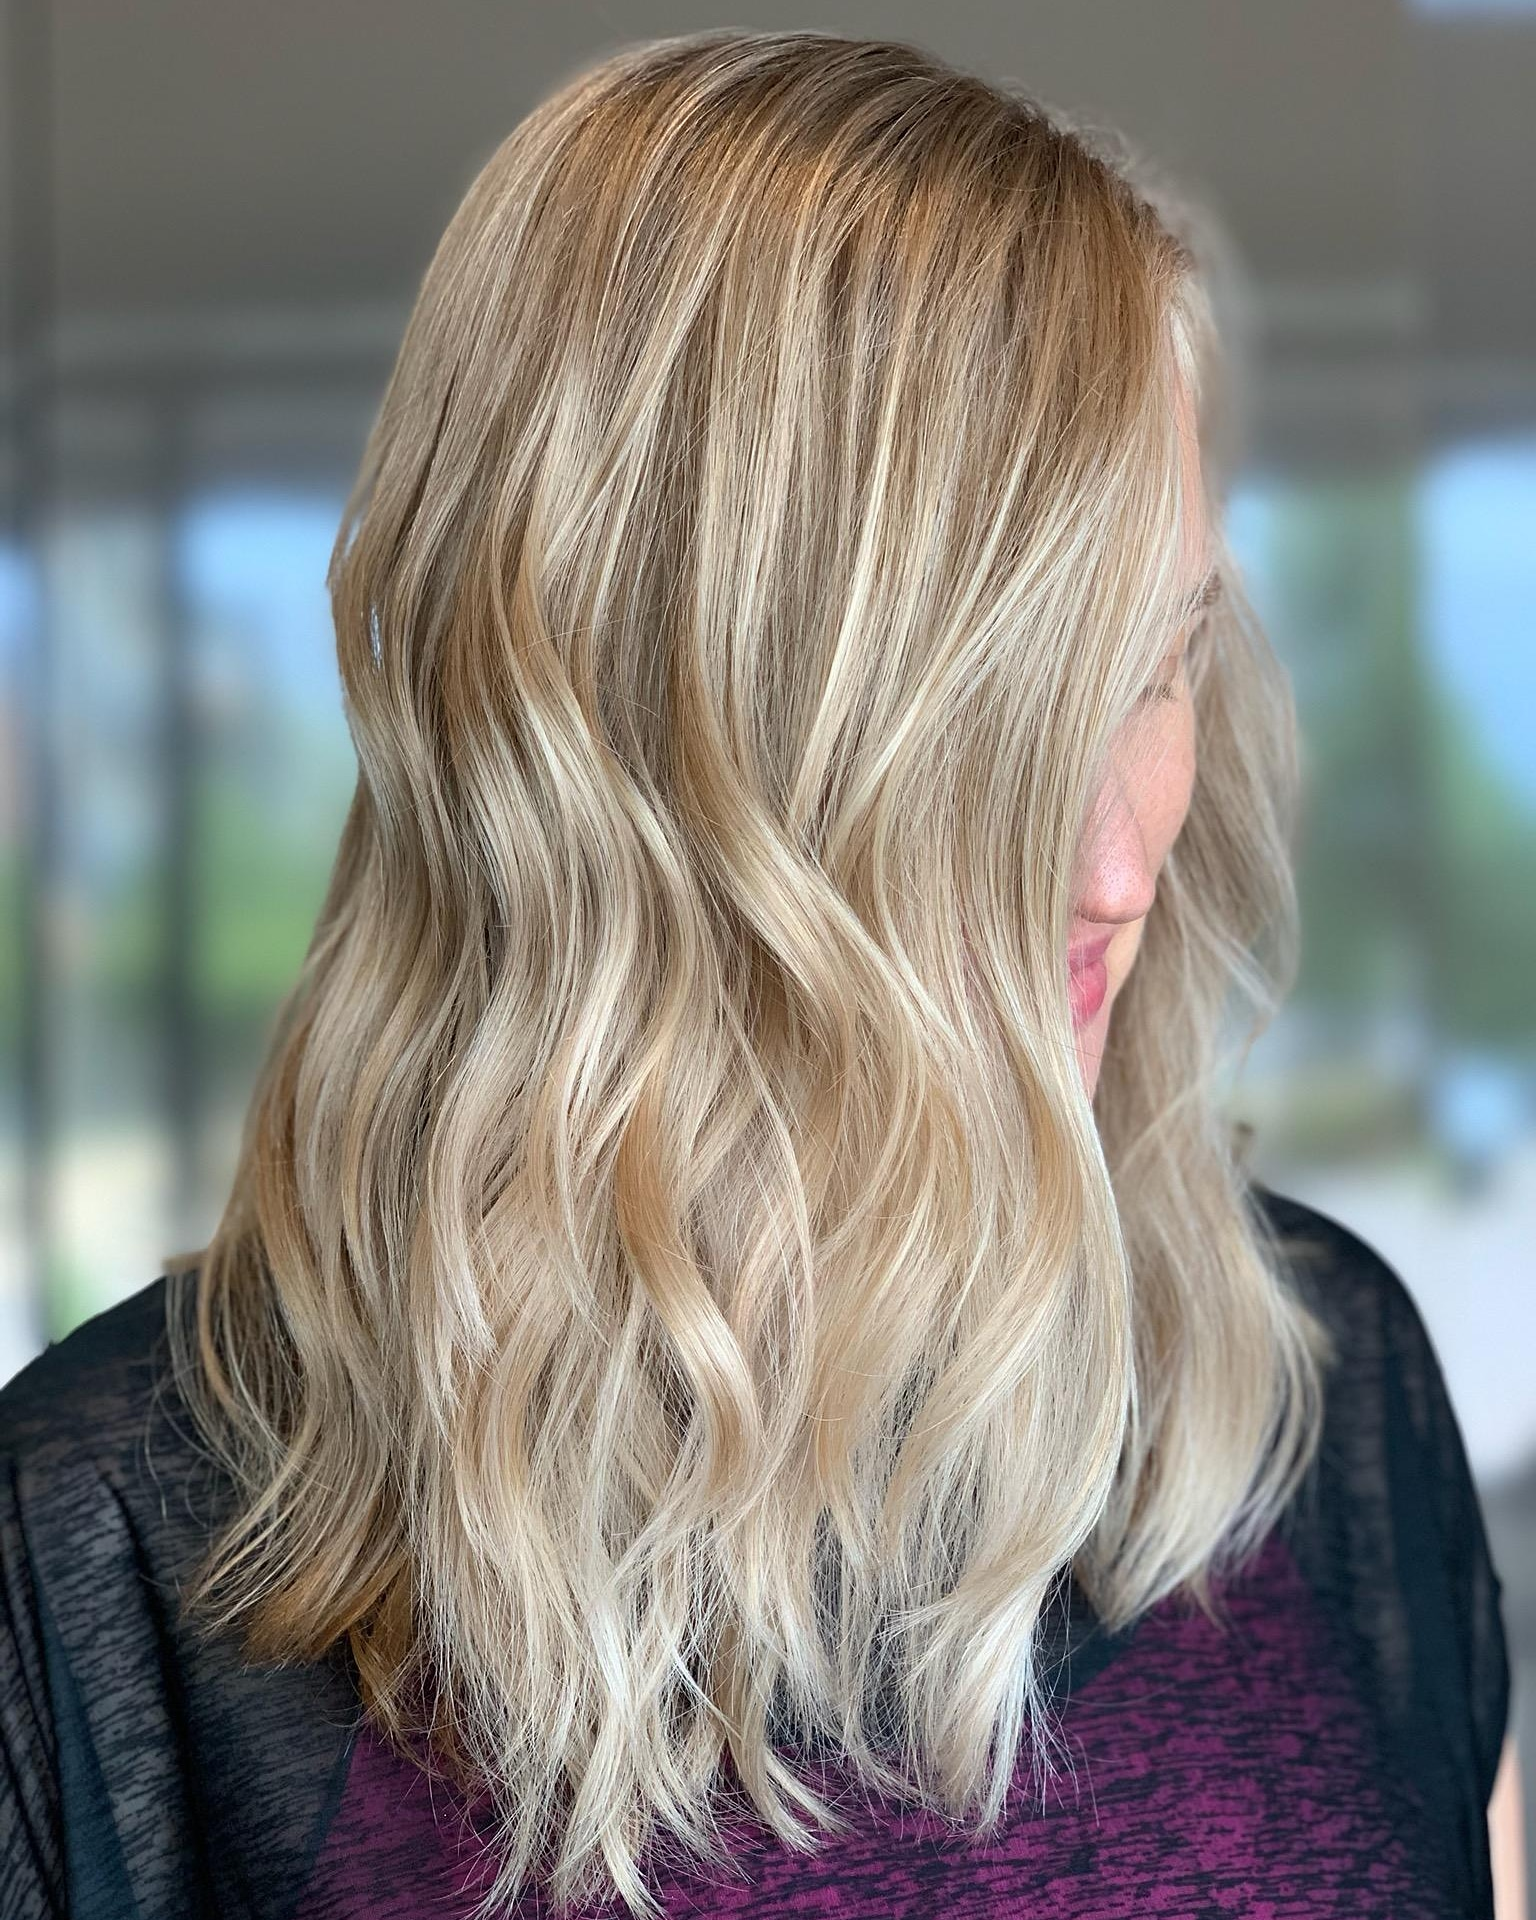 Cynthia Clients Artistik Edge Hair Studio Lake Highlands Texas Blonde Waves.jpg